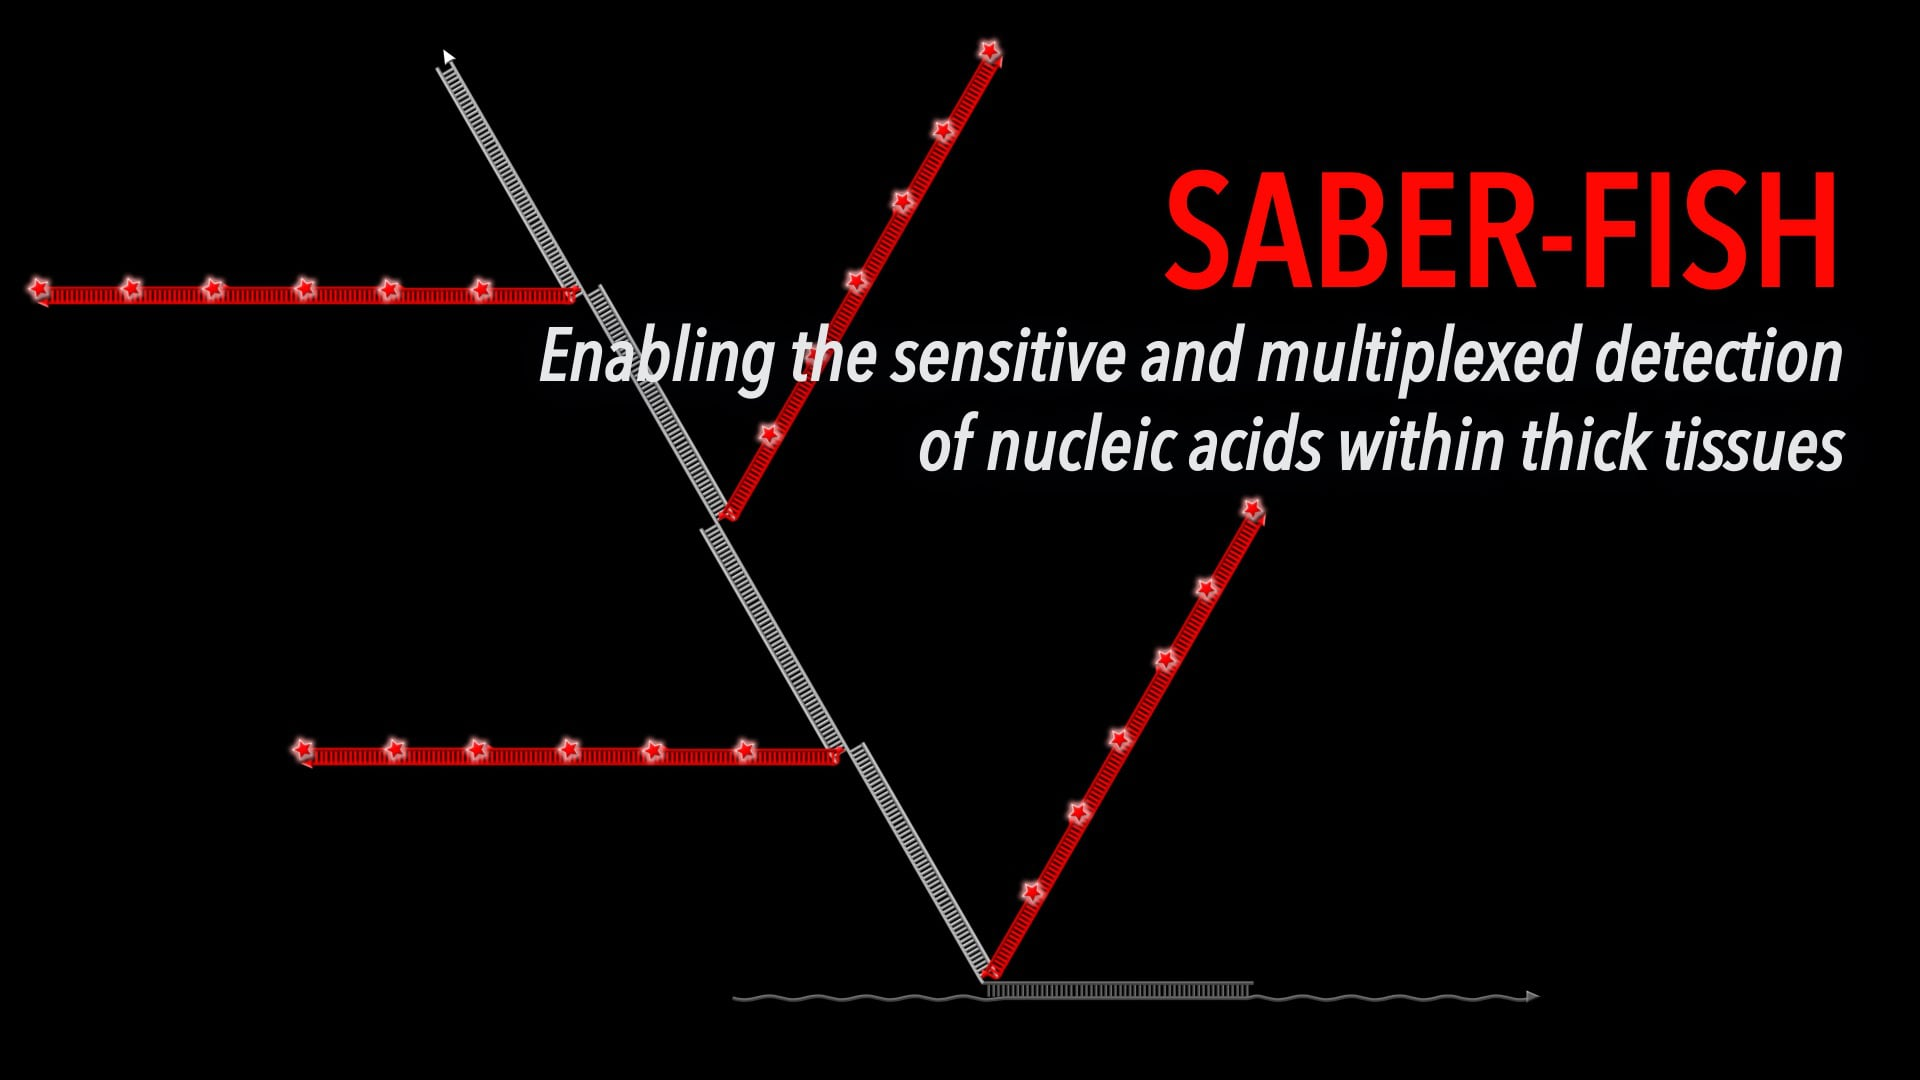 SABER-FISH: Enabling the sensitive and multiplexed detection of nucleic acids within thick tissues